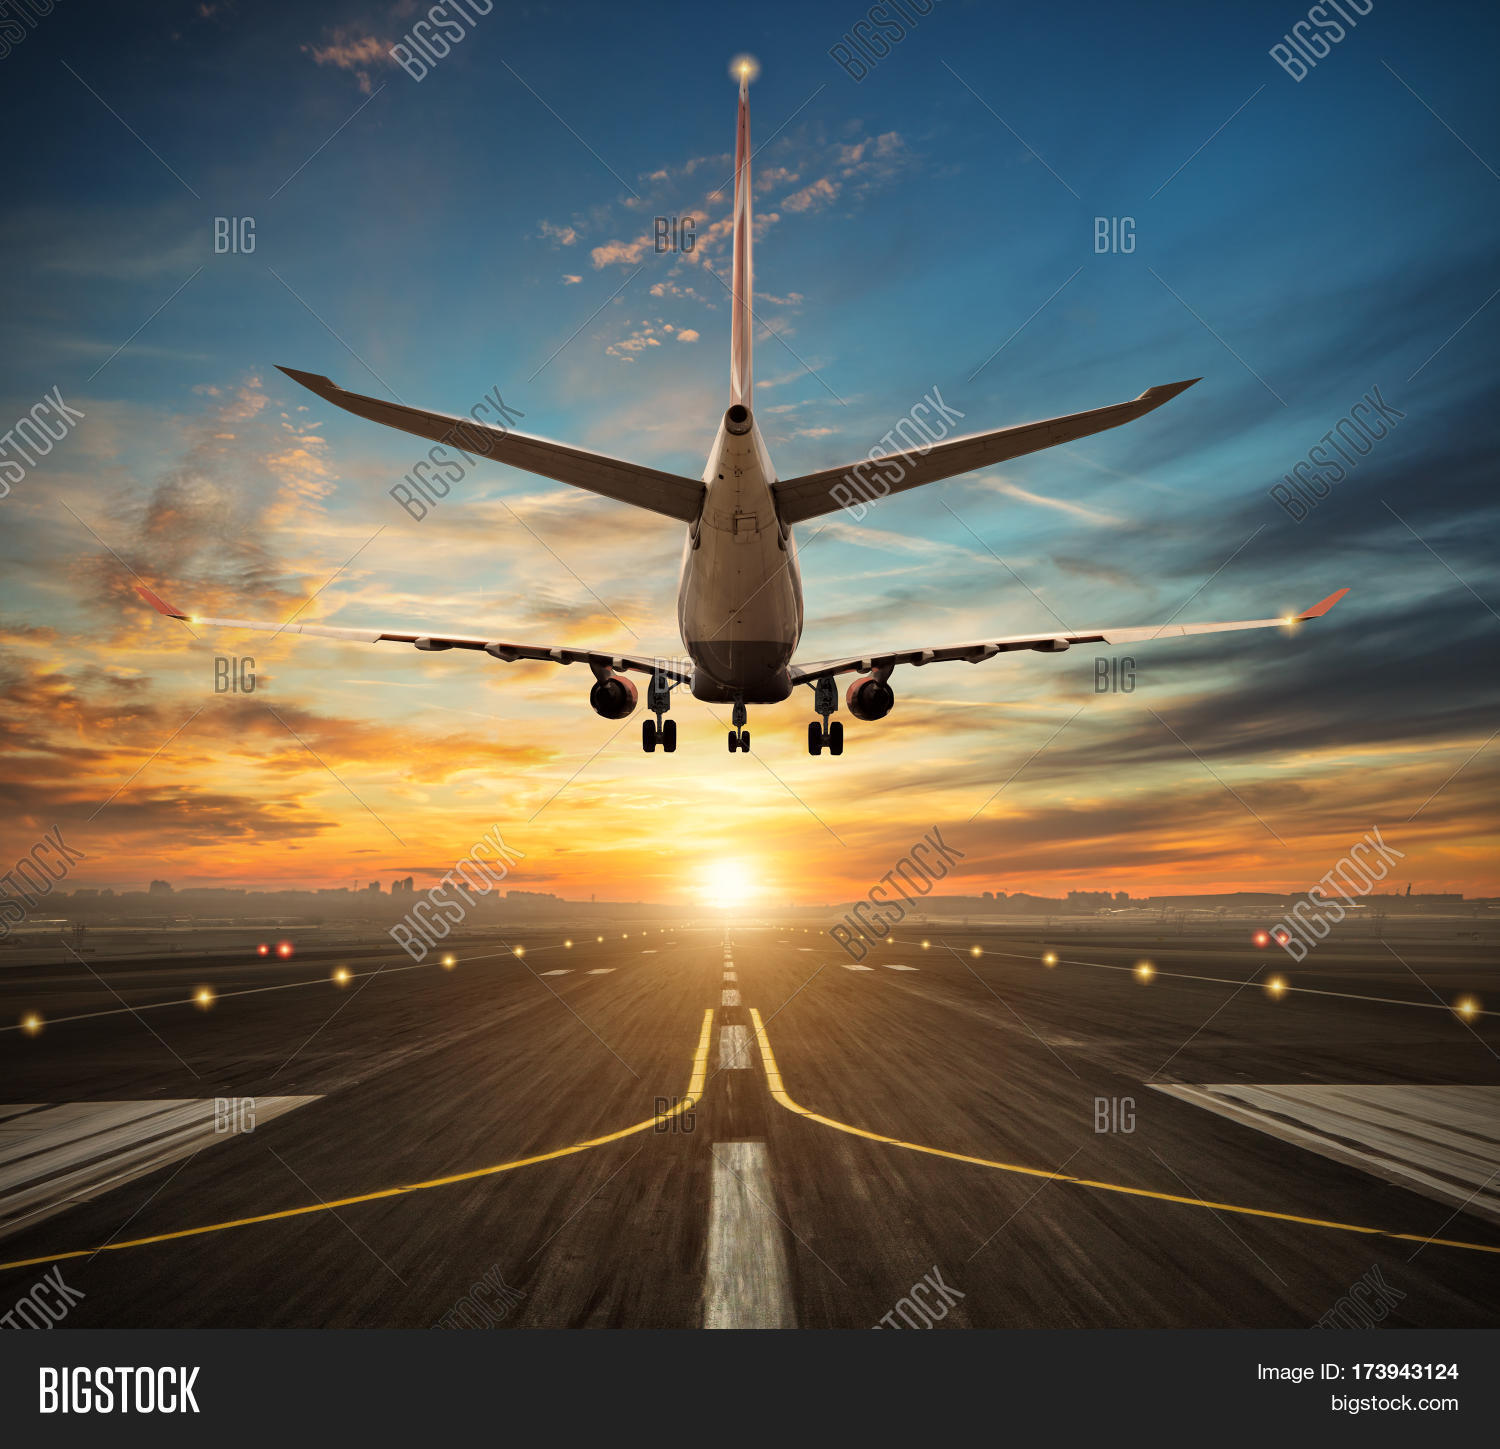 Passengers Airplane Image & Photo (Free Trial)